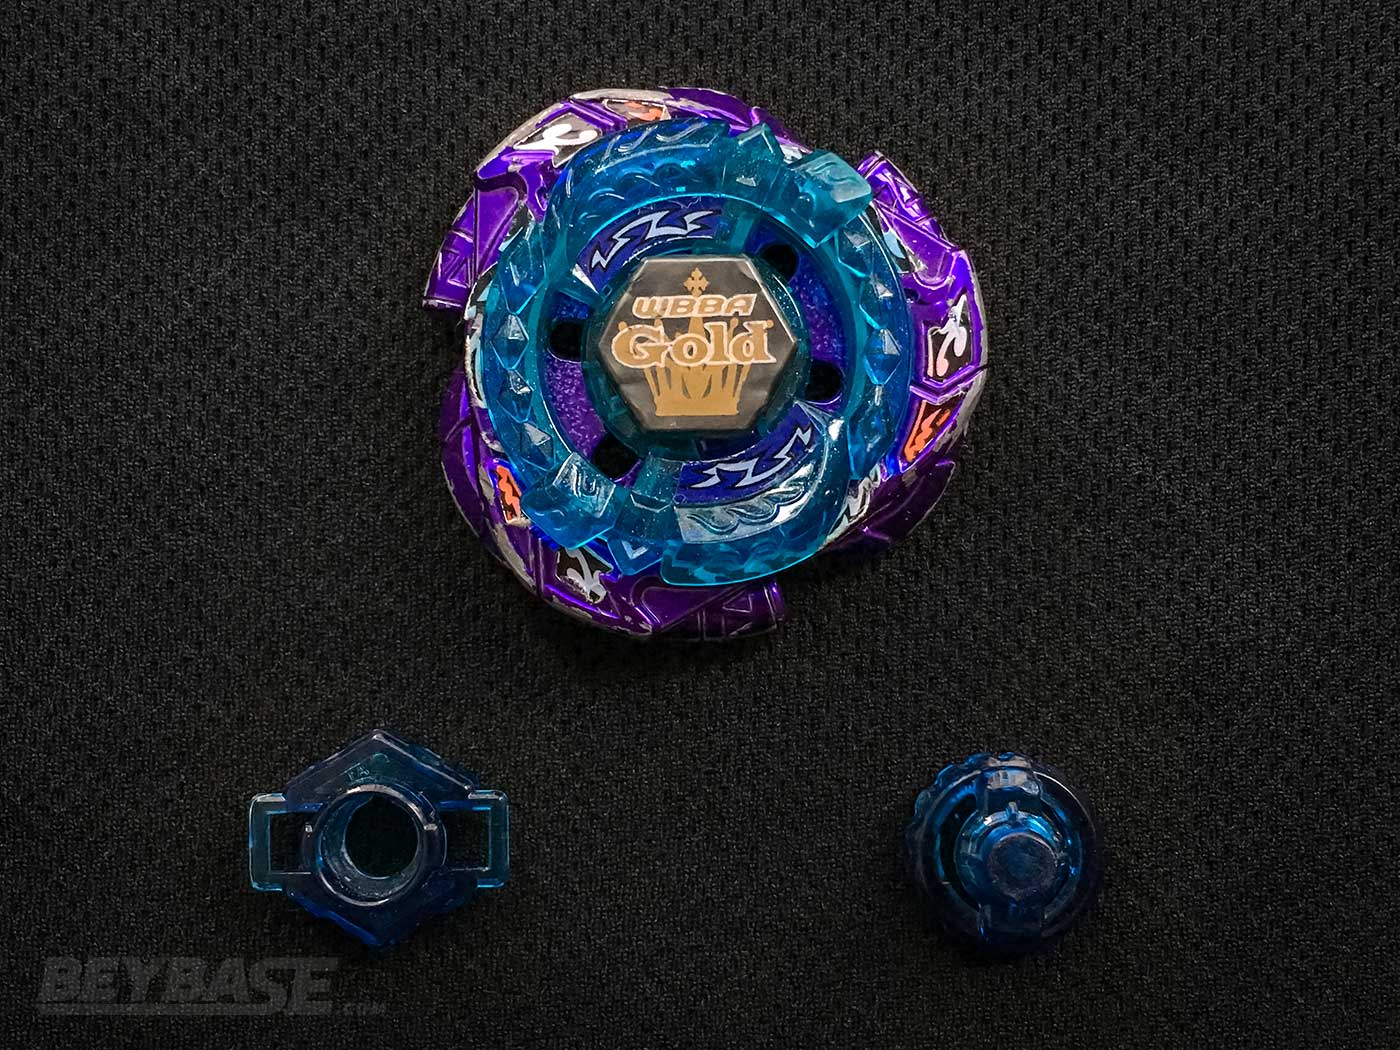 metal fight beyblade omega dragonis 85xf parts